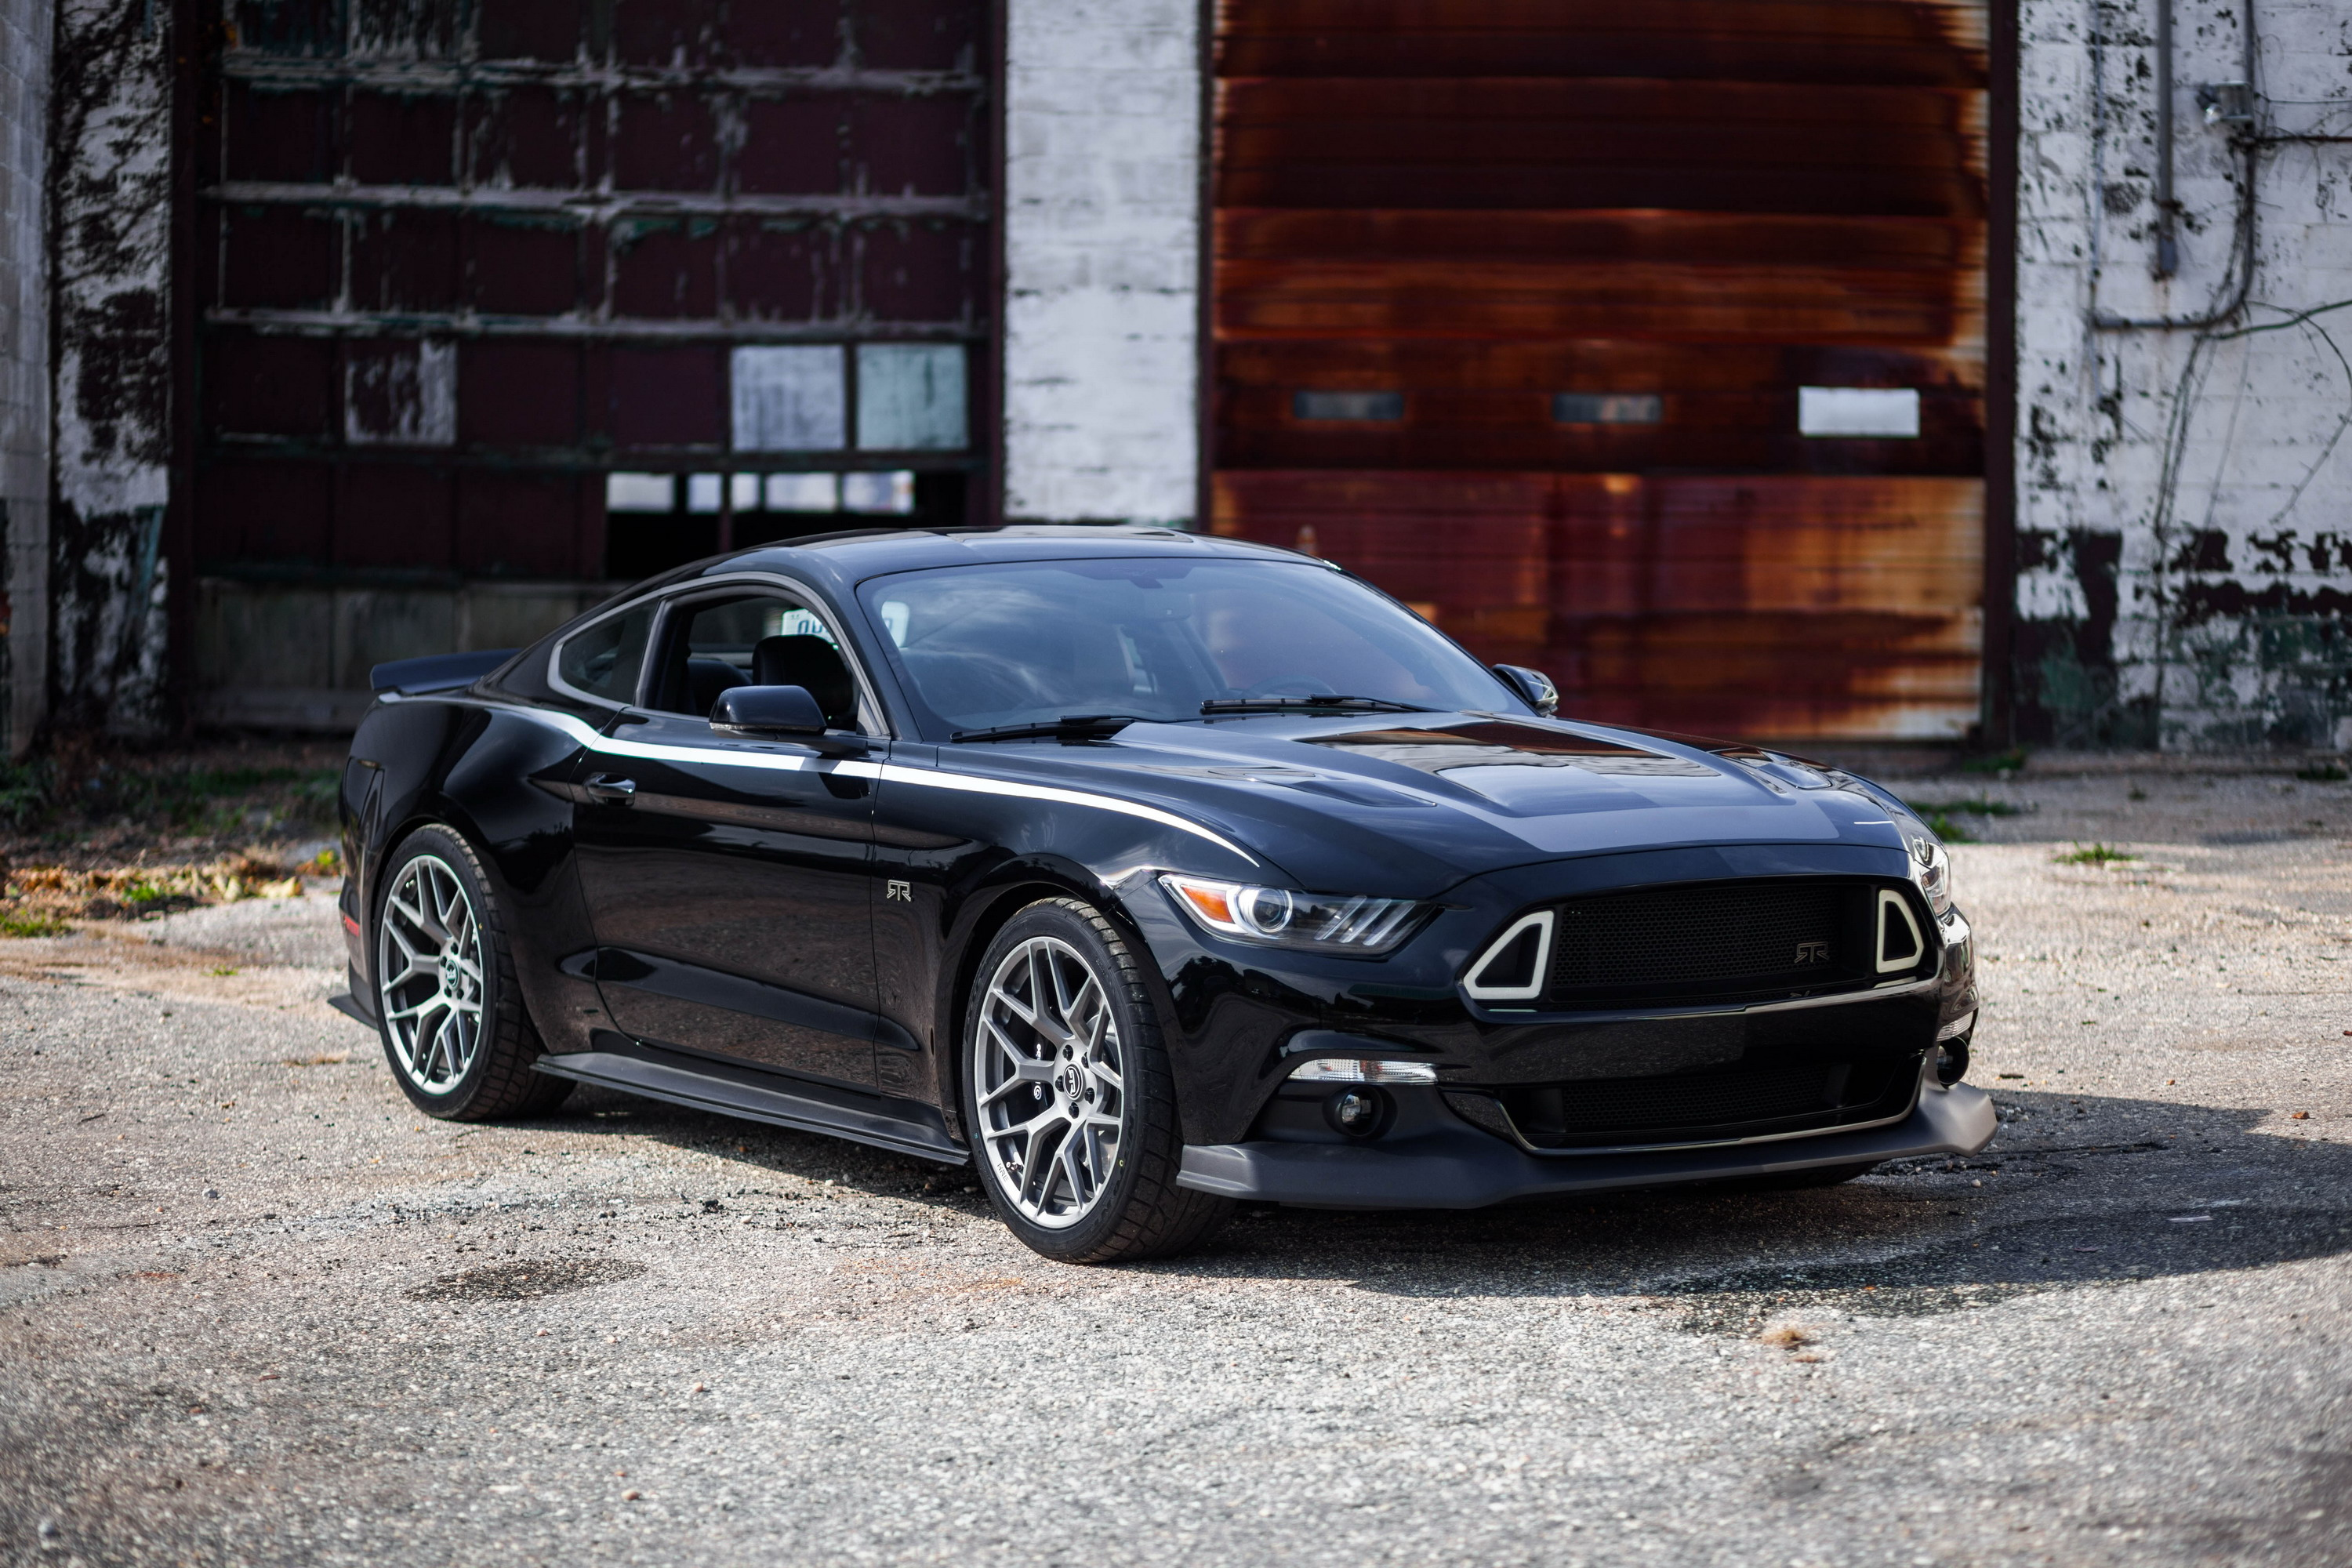 Price Of Ford Mustang Rtr